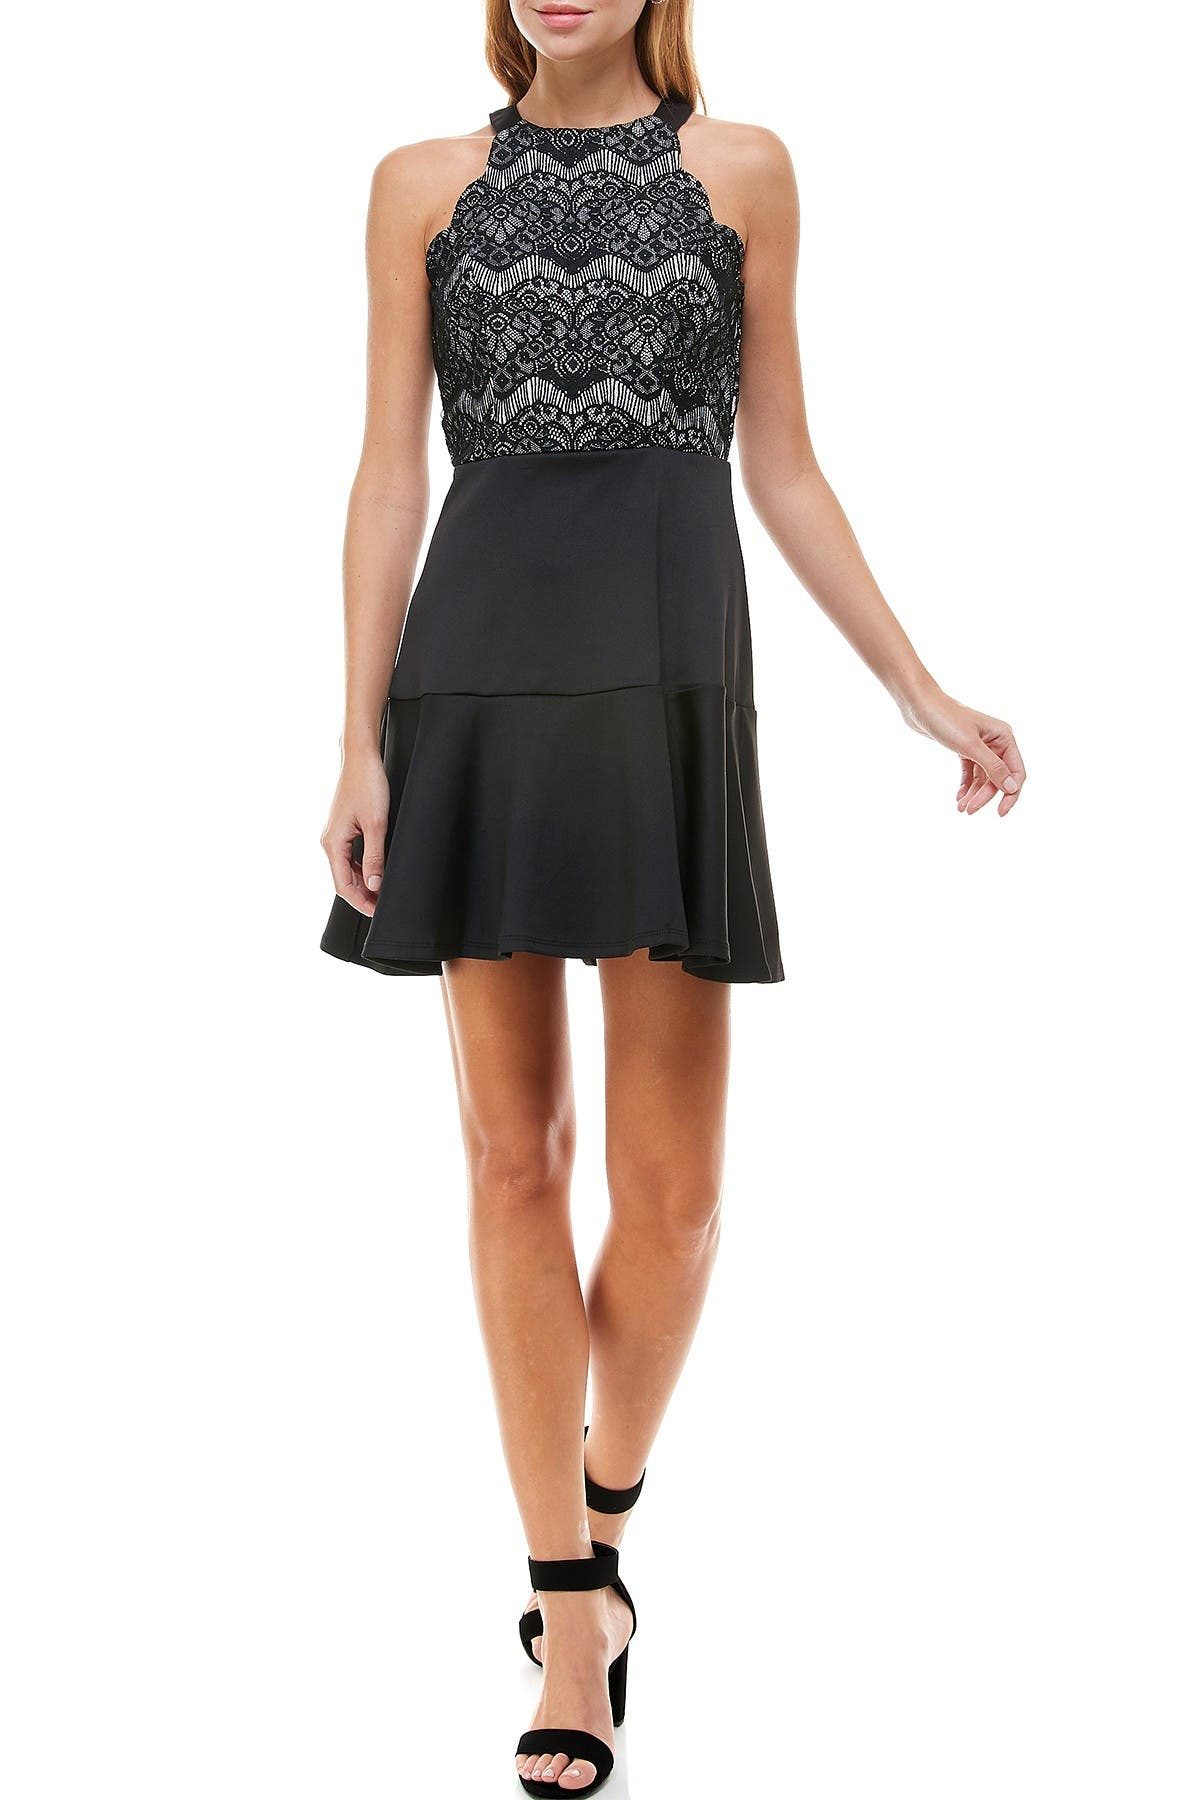 Image of ROW A Lace Bodice Glitter Dress